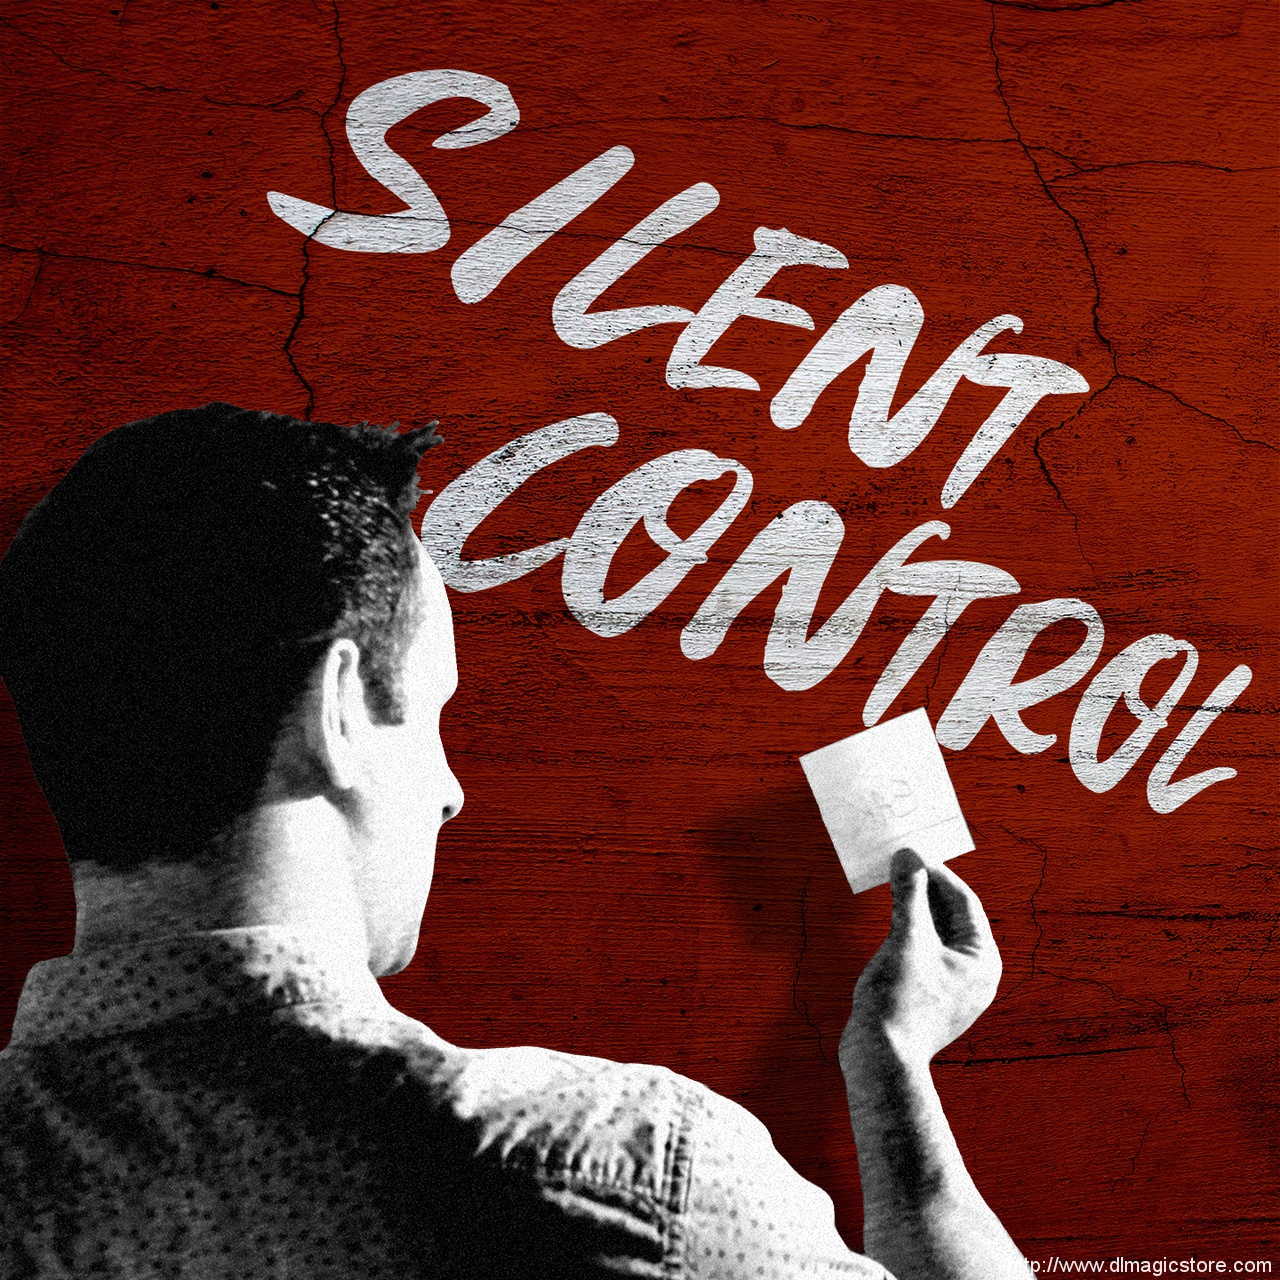 Silent Control by Rick Lax & Alan Wong